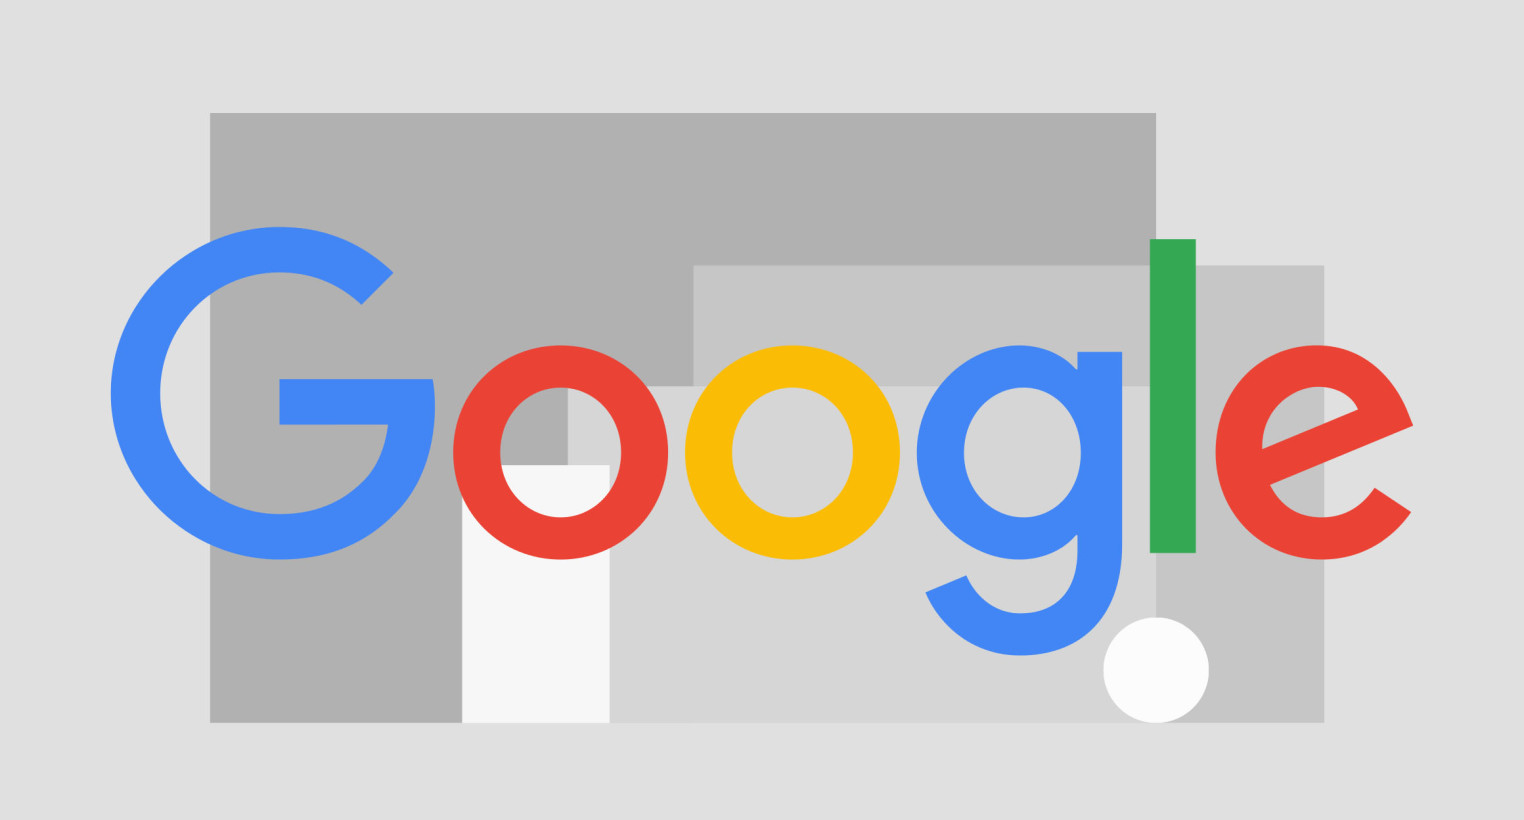 Google: Google.com Is Sporting A New Design For Some Users